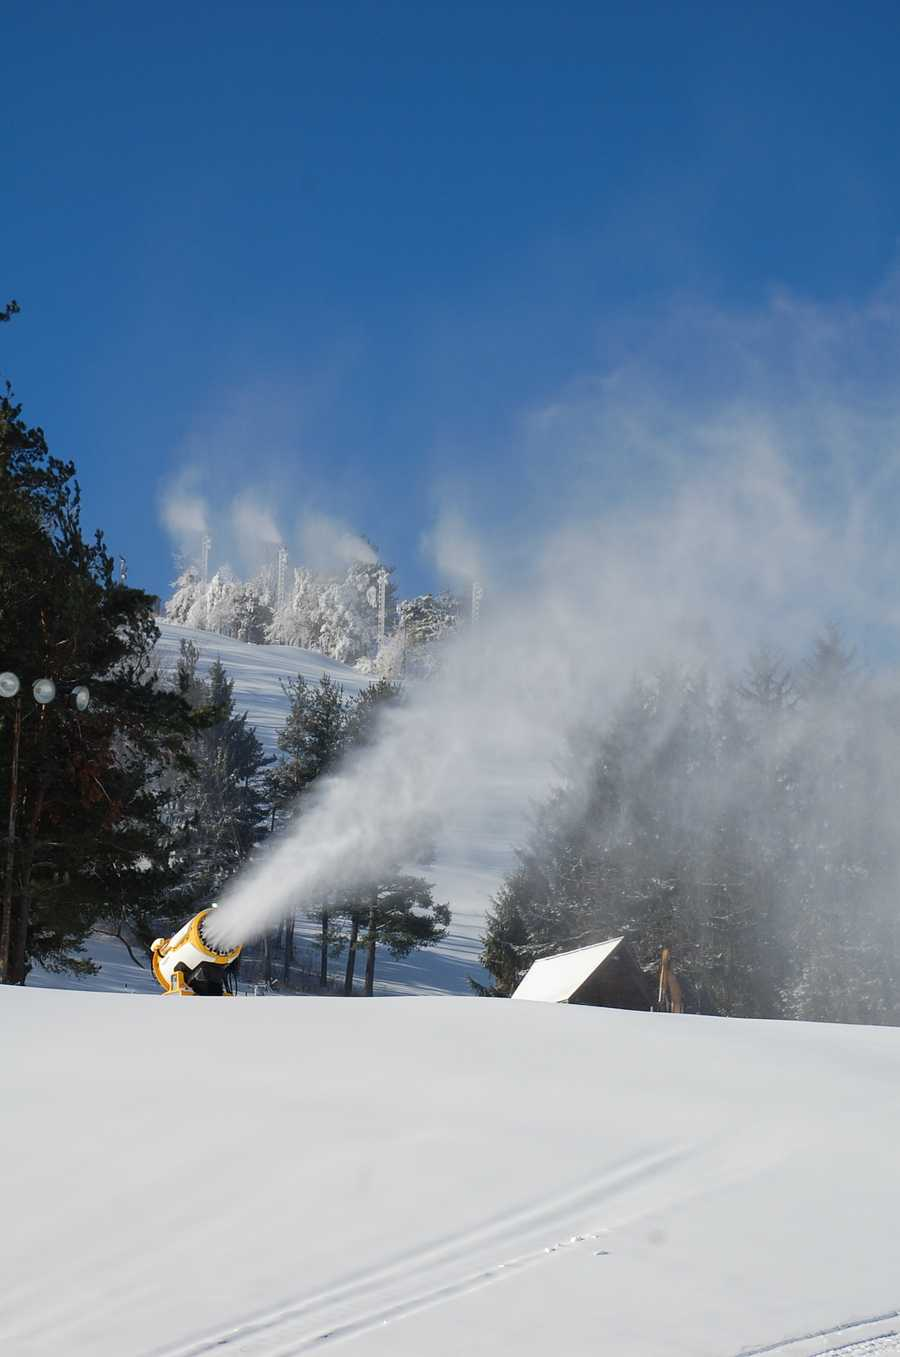 Wisp Resort announced opening day for the 2013-14 winter season is slated for Friday. Skiing, snowboarding, snow tubing, ice skating and the mountain coaster will be open Friday through Sunday, November 29 through Dec. 1 for the Thanksgiving Holiday weekend.